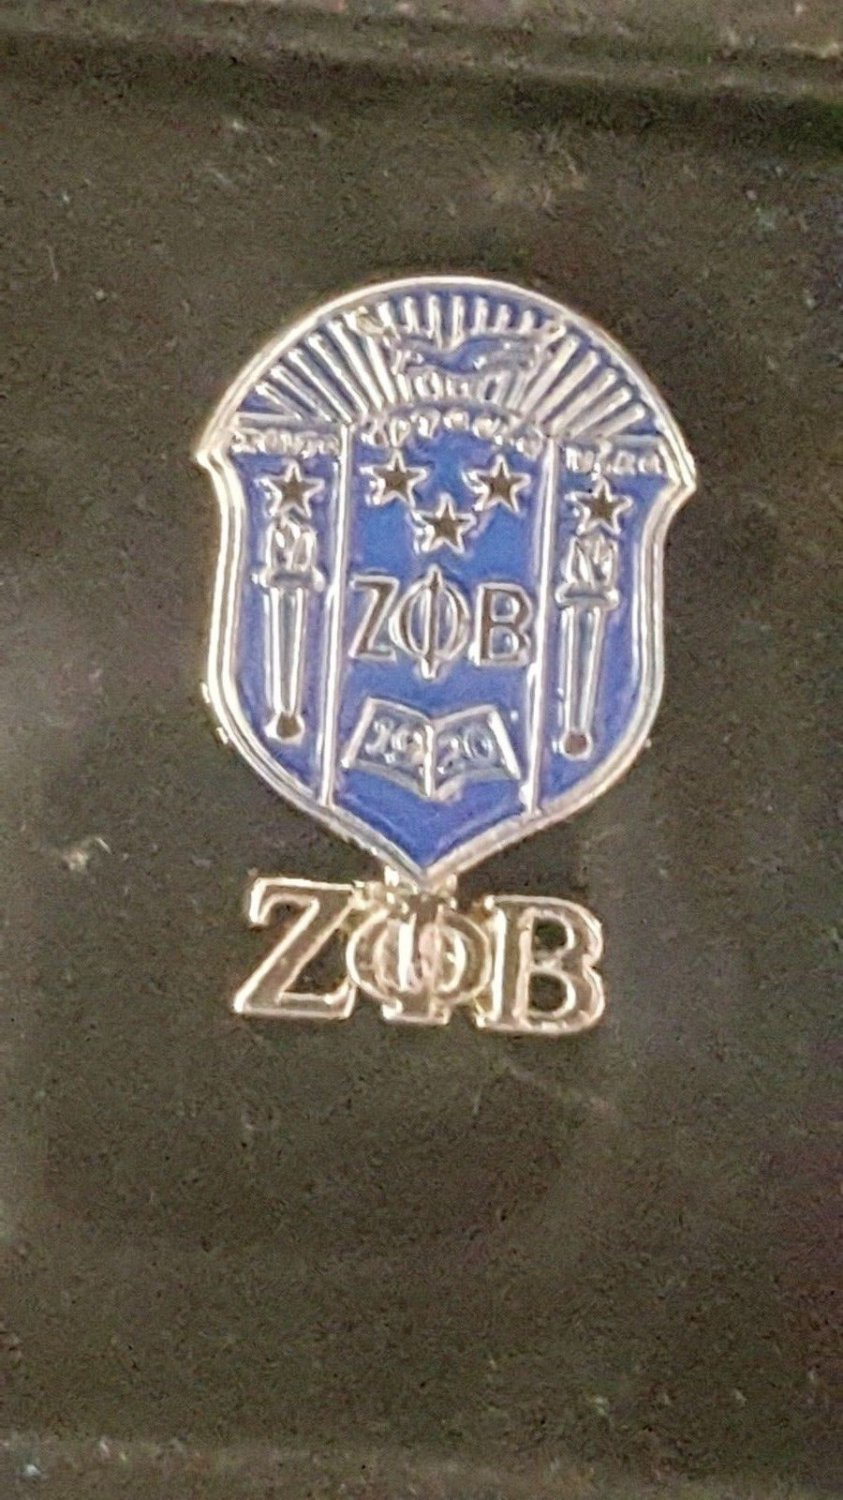 Zeta Phi Beta Sorority Lapel Pin 1920 Z-Phi-B Chrest Sorority Pin